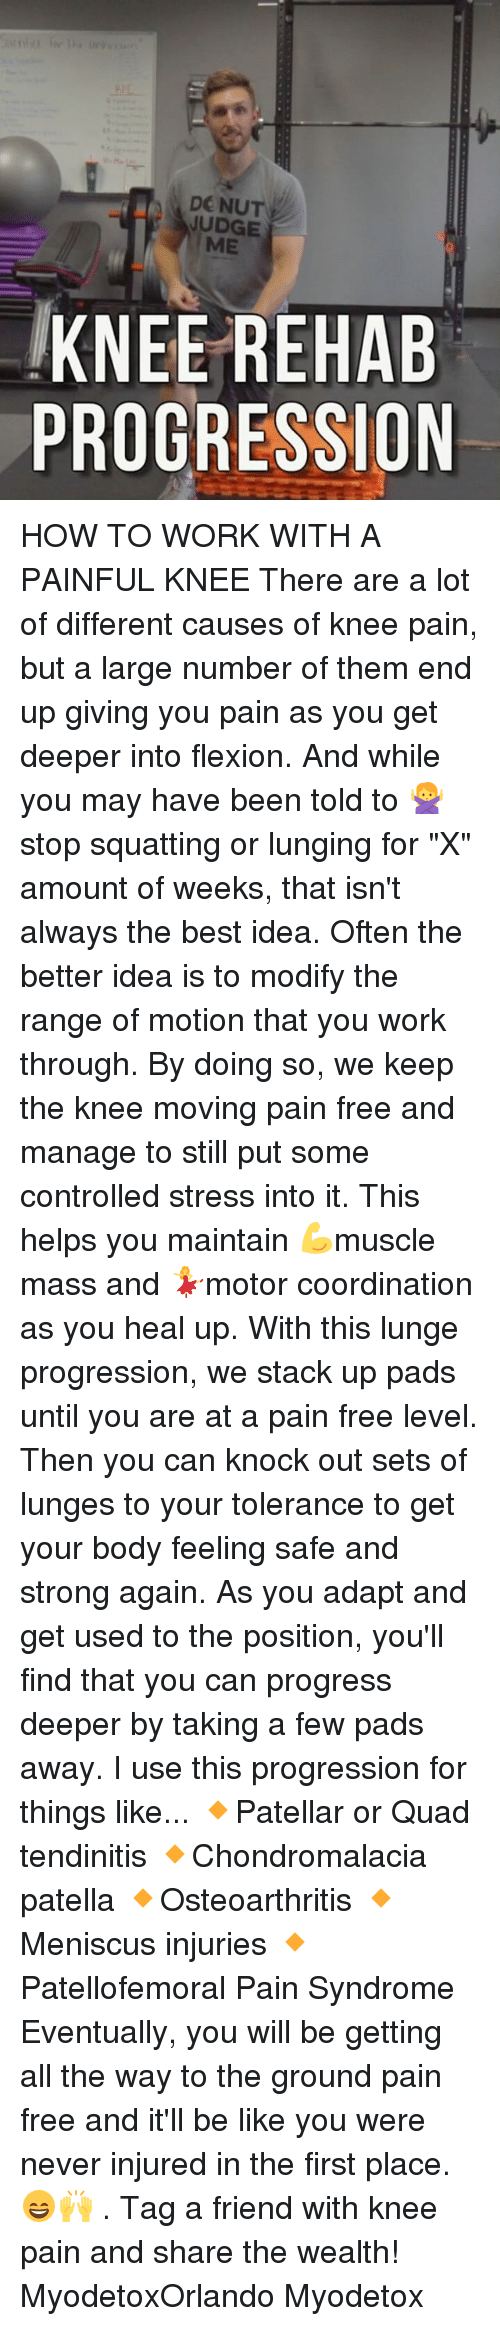 """Be Like, Memes, and Work: DO NUT  JUDGE  ME  KNEE REHAB  PROGRESSION HOW TO WORK WITH A PAINFUL KNEE There are a lot of different causes of knee pain, but a large number of them end up giving you pain as you get deeper into flexion. And while you may have been told to 🙅stop squatting or lunging for """"X"""" amount of weeks, that isn't always the best idea. Often the better idea is to modify the range of motion that you work through. By doing so, we keep the knee moving pain free and manage to still put some controlled stress into it. This helps you maintain 💪muscle mass and 💃motor coordination as you heal up. With this lunge progression, we stack up pads until you are at a pain free level. Then you can knock out sets of lunges to your tolerance to get your body feeling safe and strong again. As you adapt and get used to the position, you'll find that you can progress deeper by taking a few pads away. I use this progression for things like... 🔸Patellar or Quad tendinitis 🔸Chondromalacia patella 🔸Osteoarthritis 🔸Meniscus injuries 🔸Patellofemoral Pain Syndrome Eventually, you will be getting all the way to the ground pain free and it'll be like you were never injured in the first place.😄🙌 . Tag a friend with knee pain and share the wealth! MyodetoxOrlando Myodetox"""